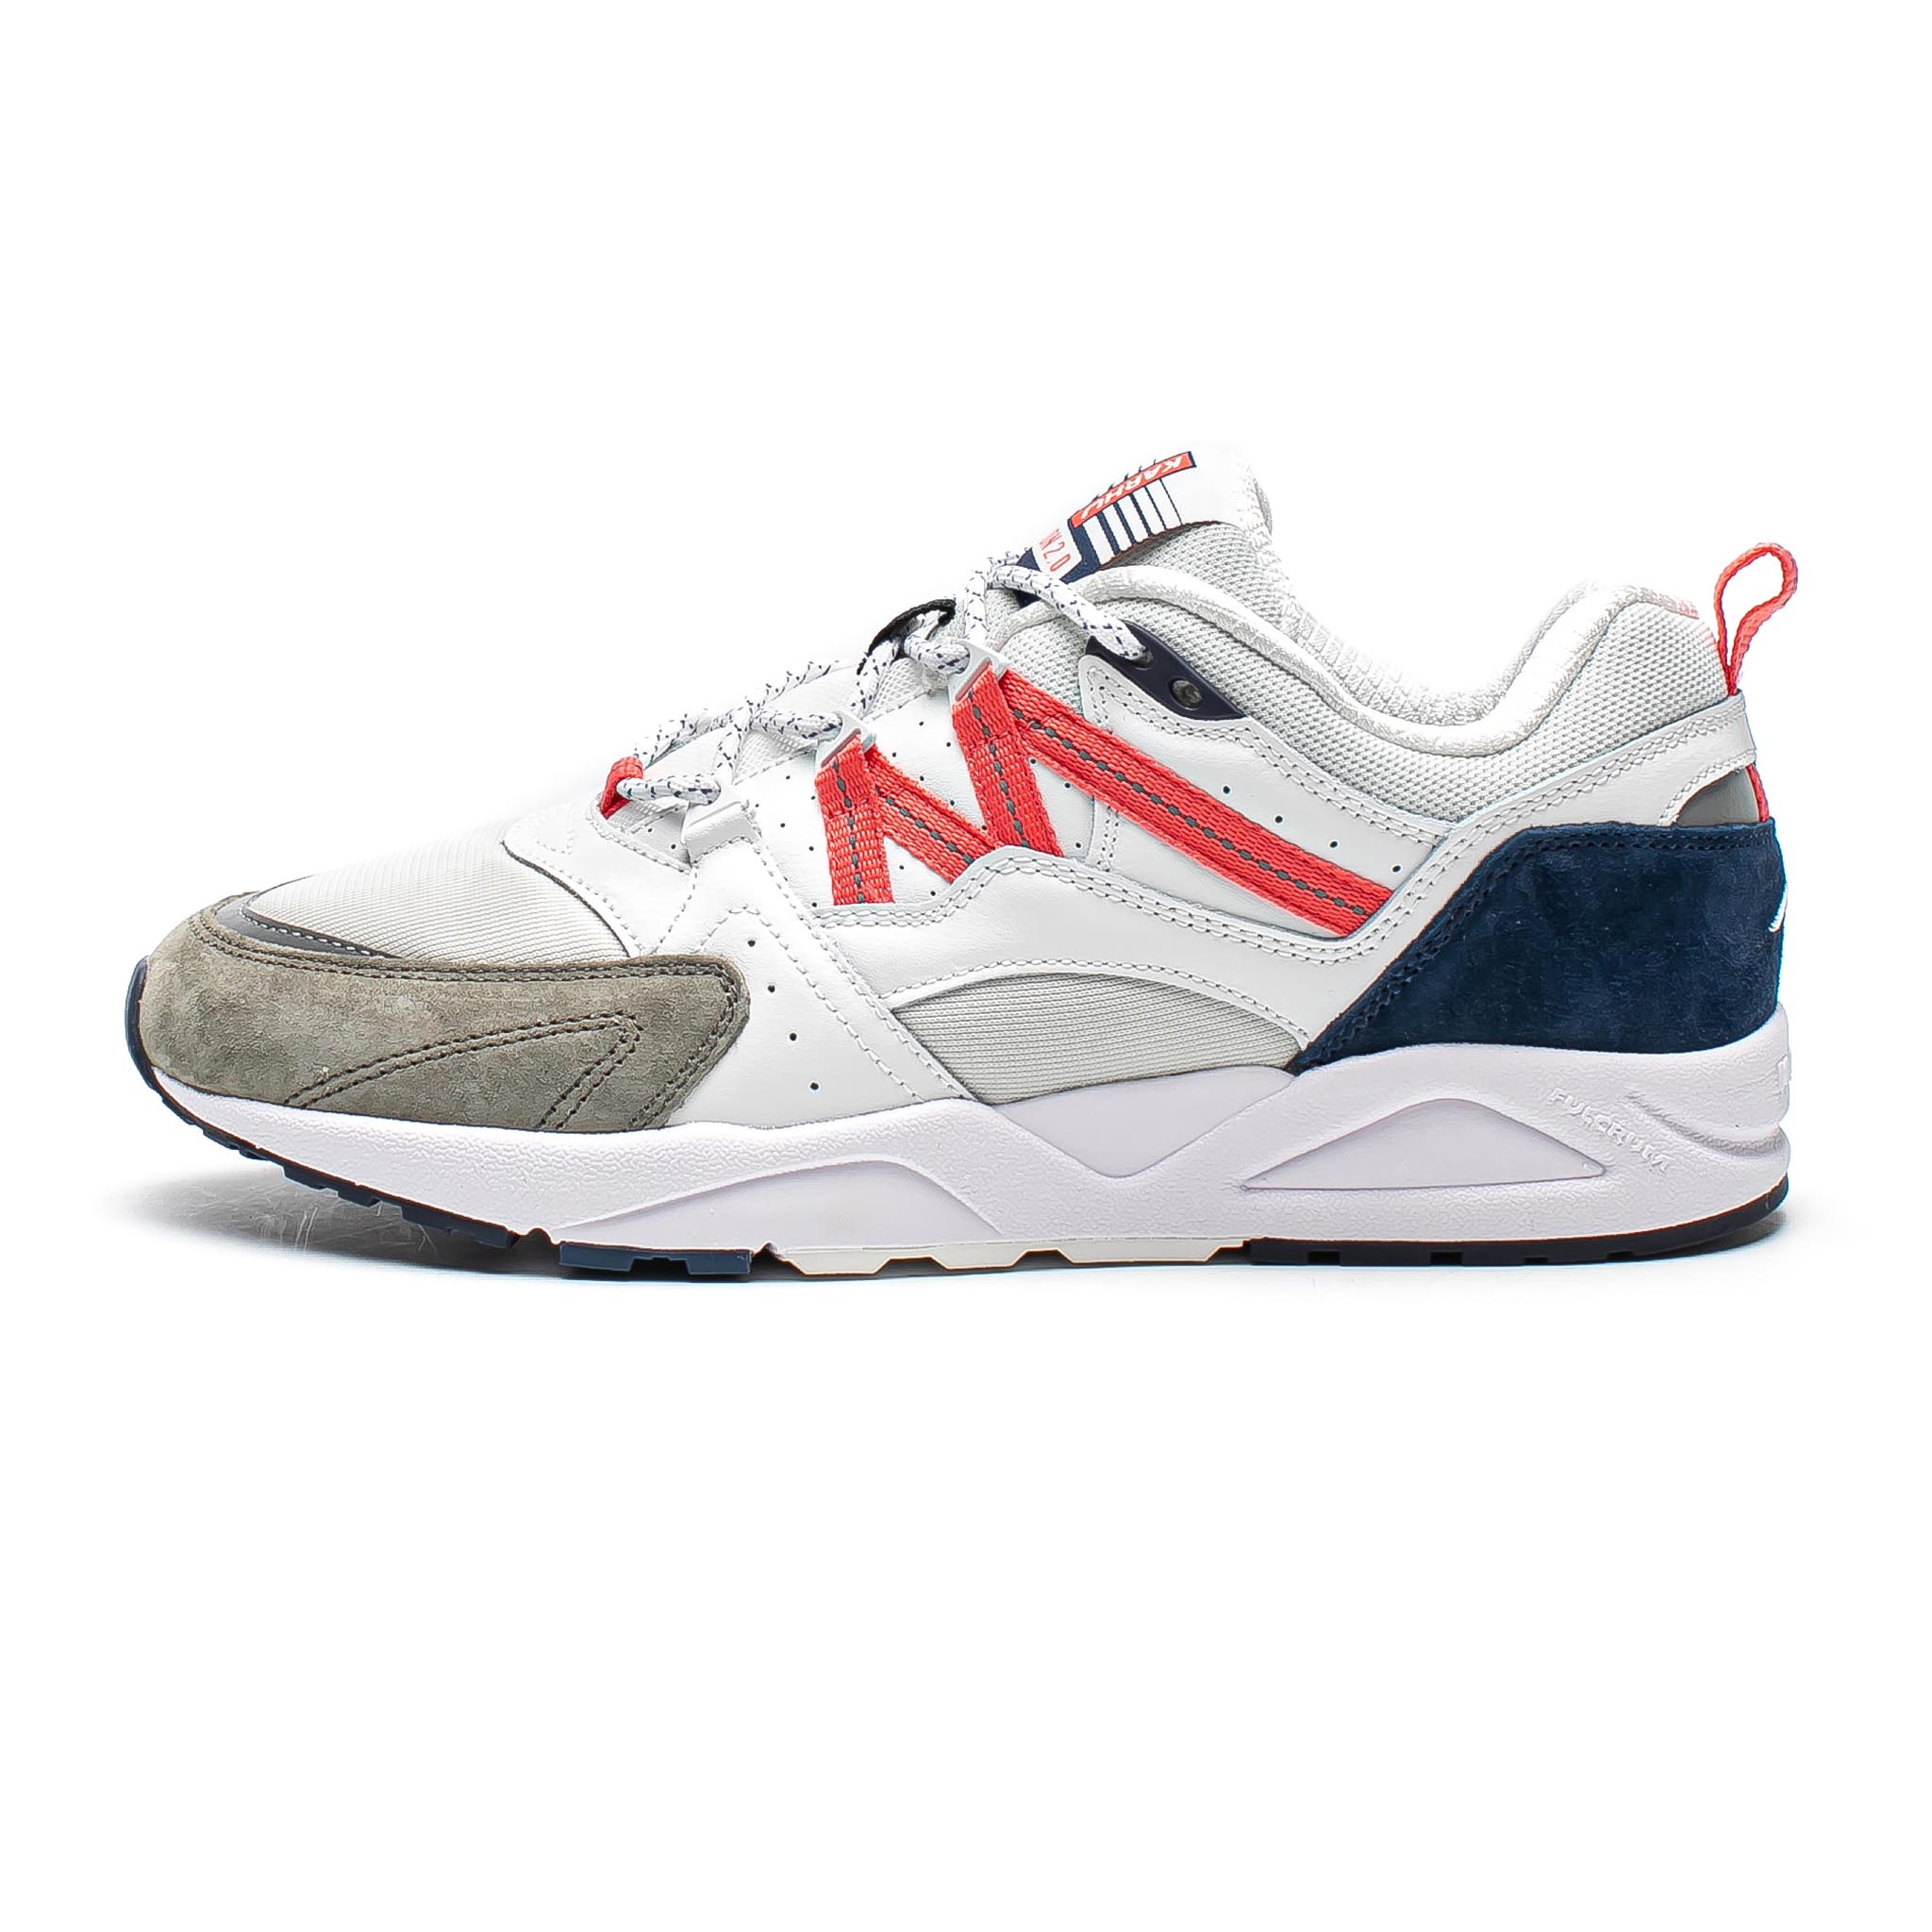 Karhu 'All-Around' Pack Fusion 2.0 Vetiver/White